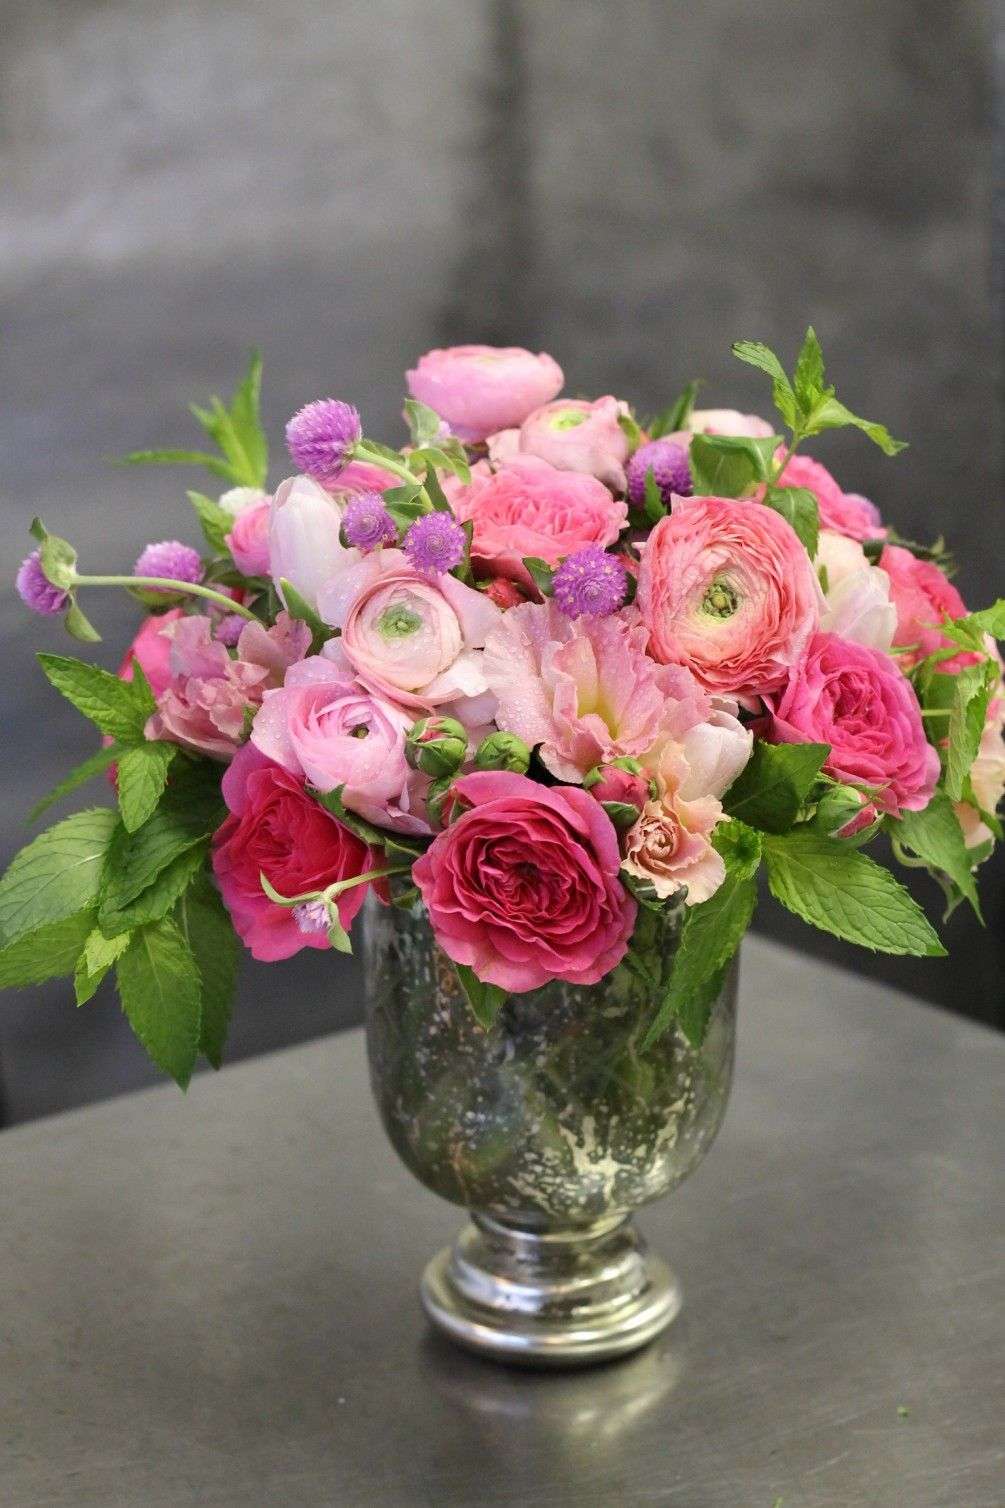 Send Love Actually Flowers In New York Ny Flower Arrangements Beautiful Flowers Flower Delivery